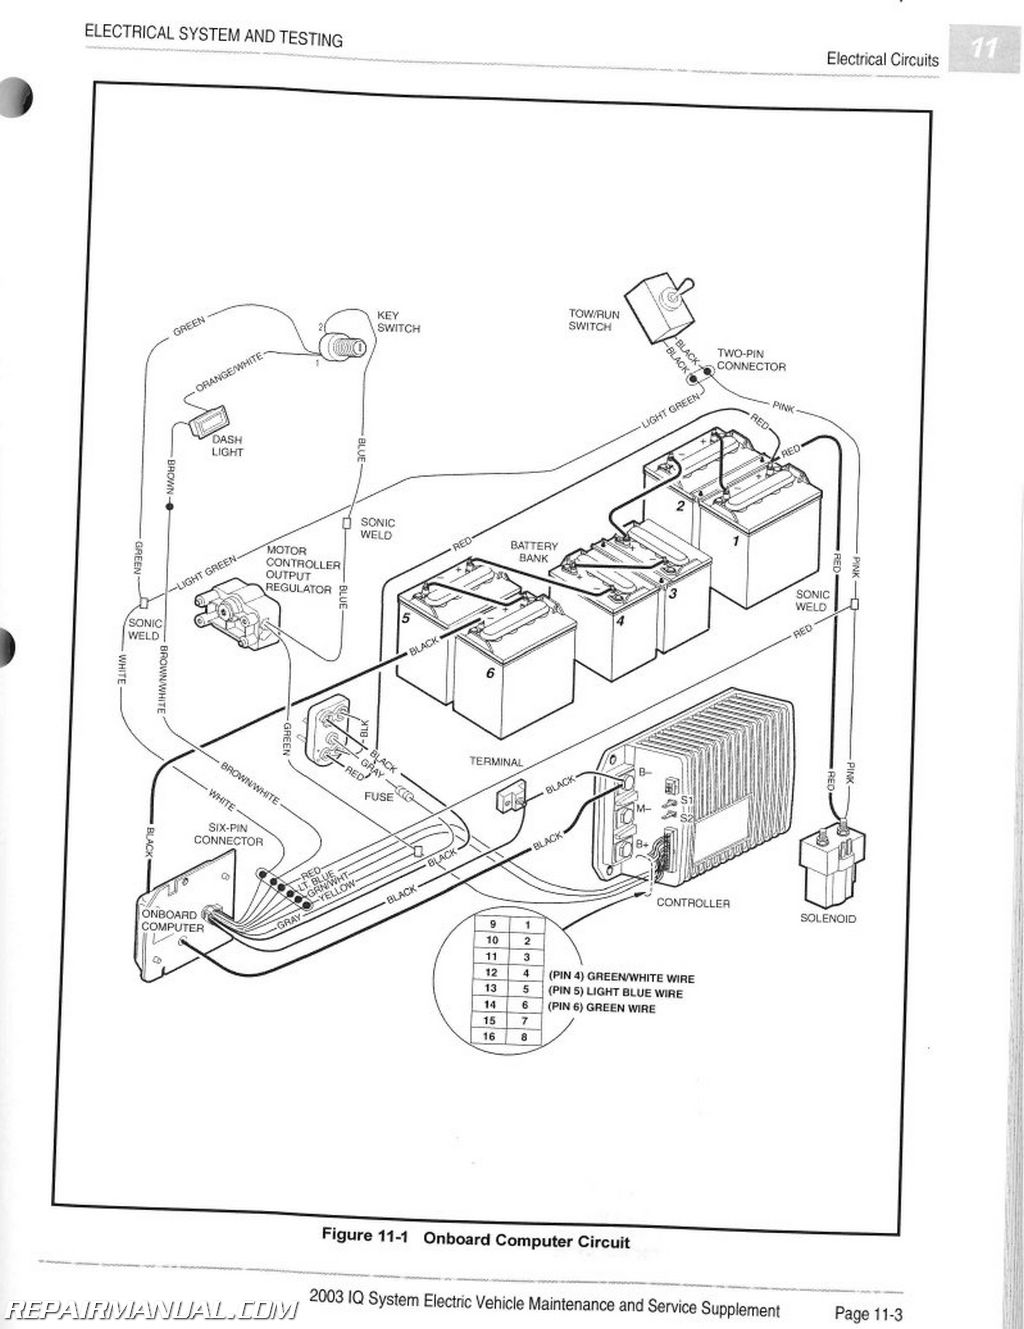 91 club car golf cart wiring diagram - 1996 crown victoria fuse box for wiring  diagram schematics  wiring diagram schematics